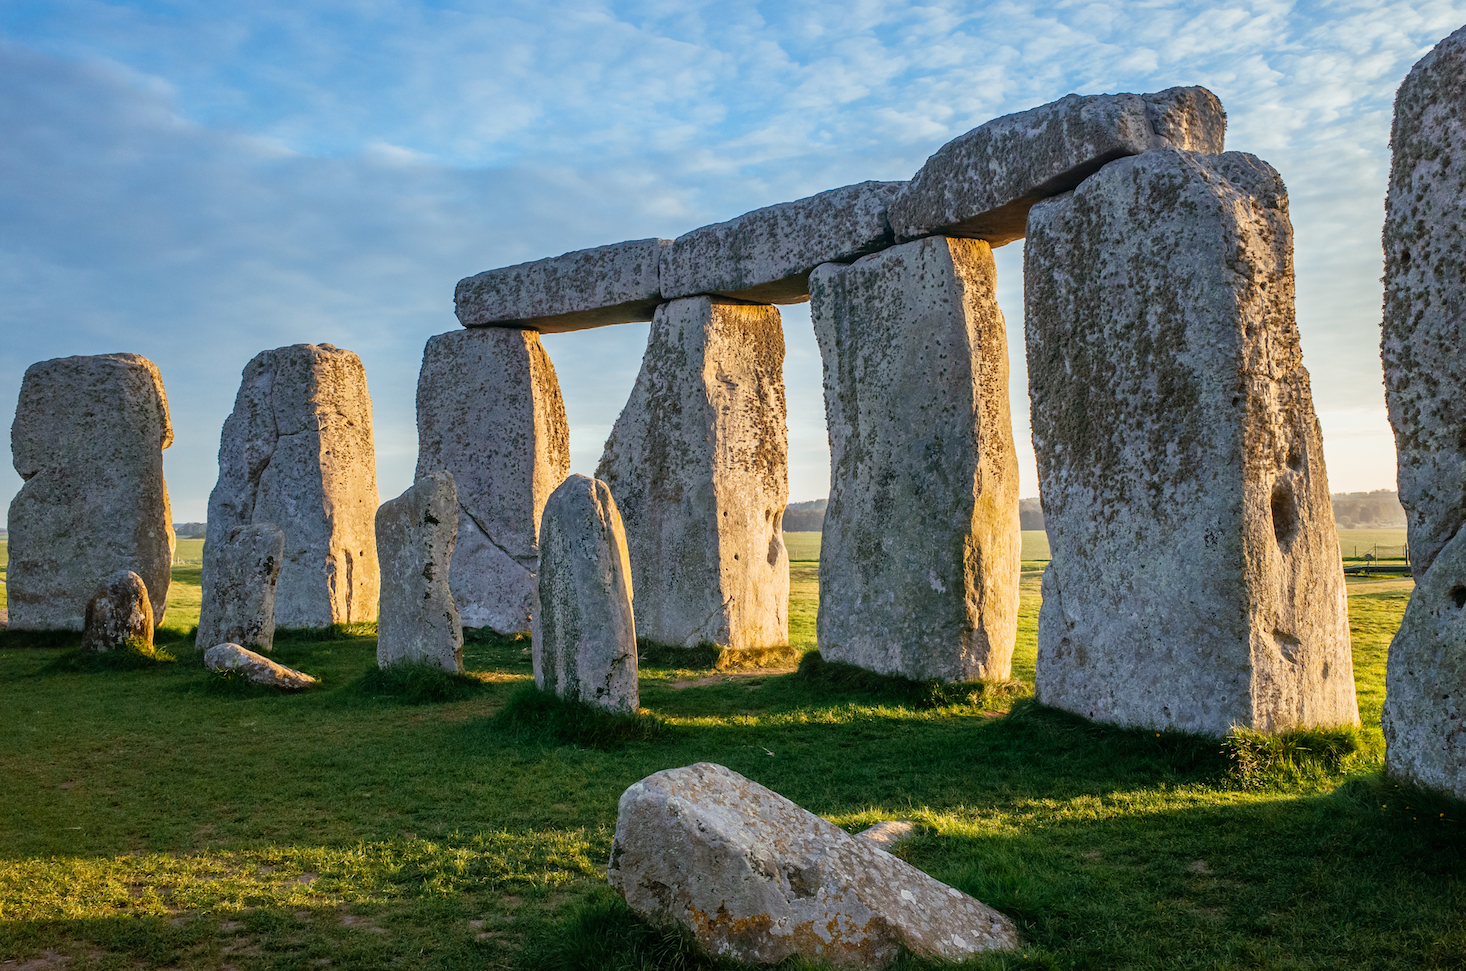 A new study may have solved one of the biggest mysteries surrounding Stonehenge, arguably one of the world's most famous prehistoric monuments.